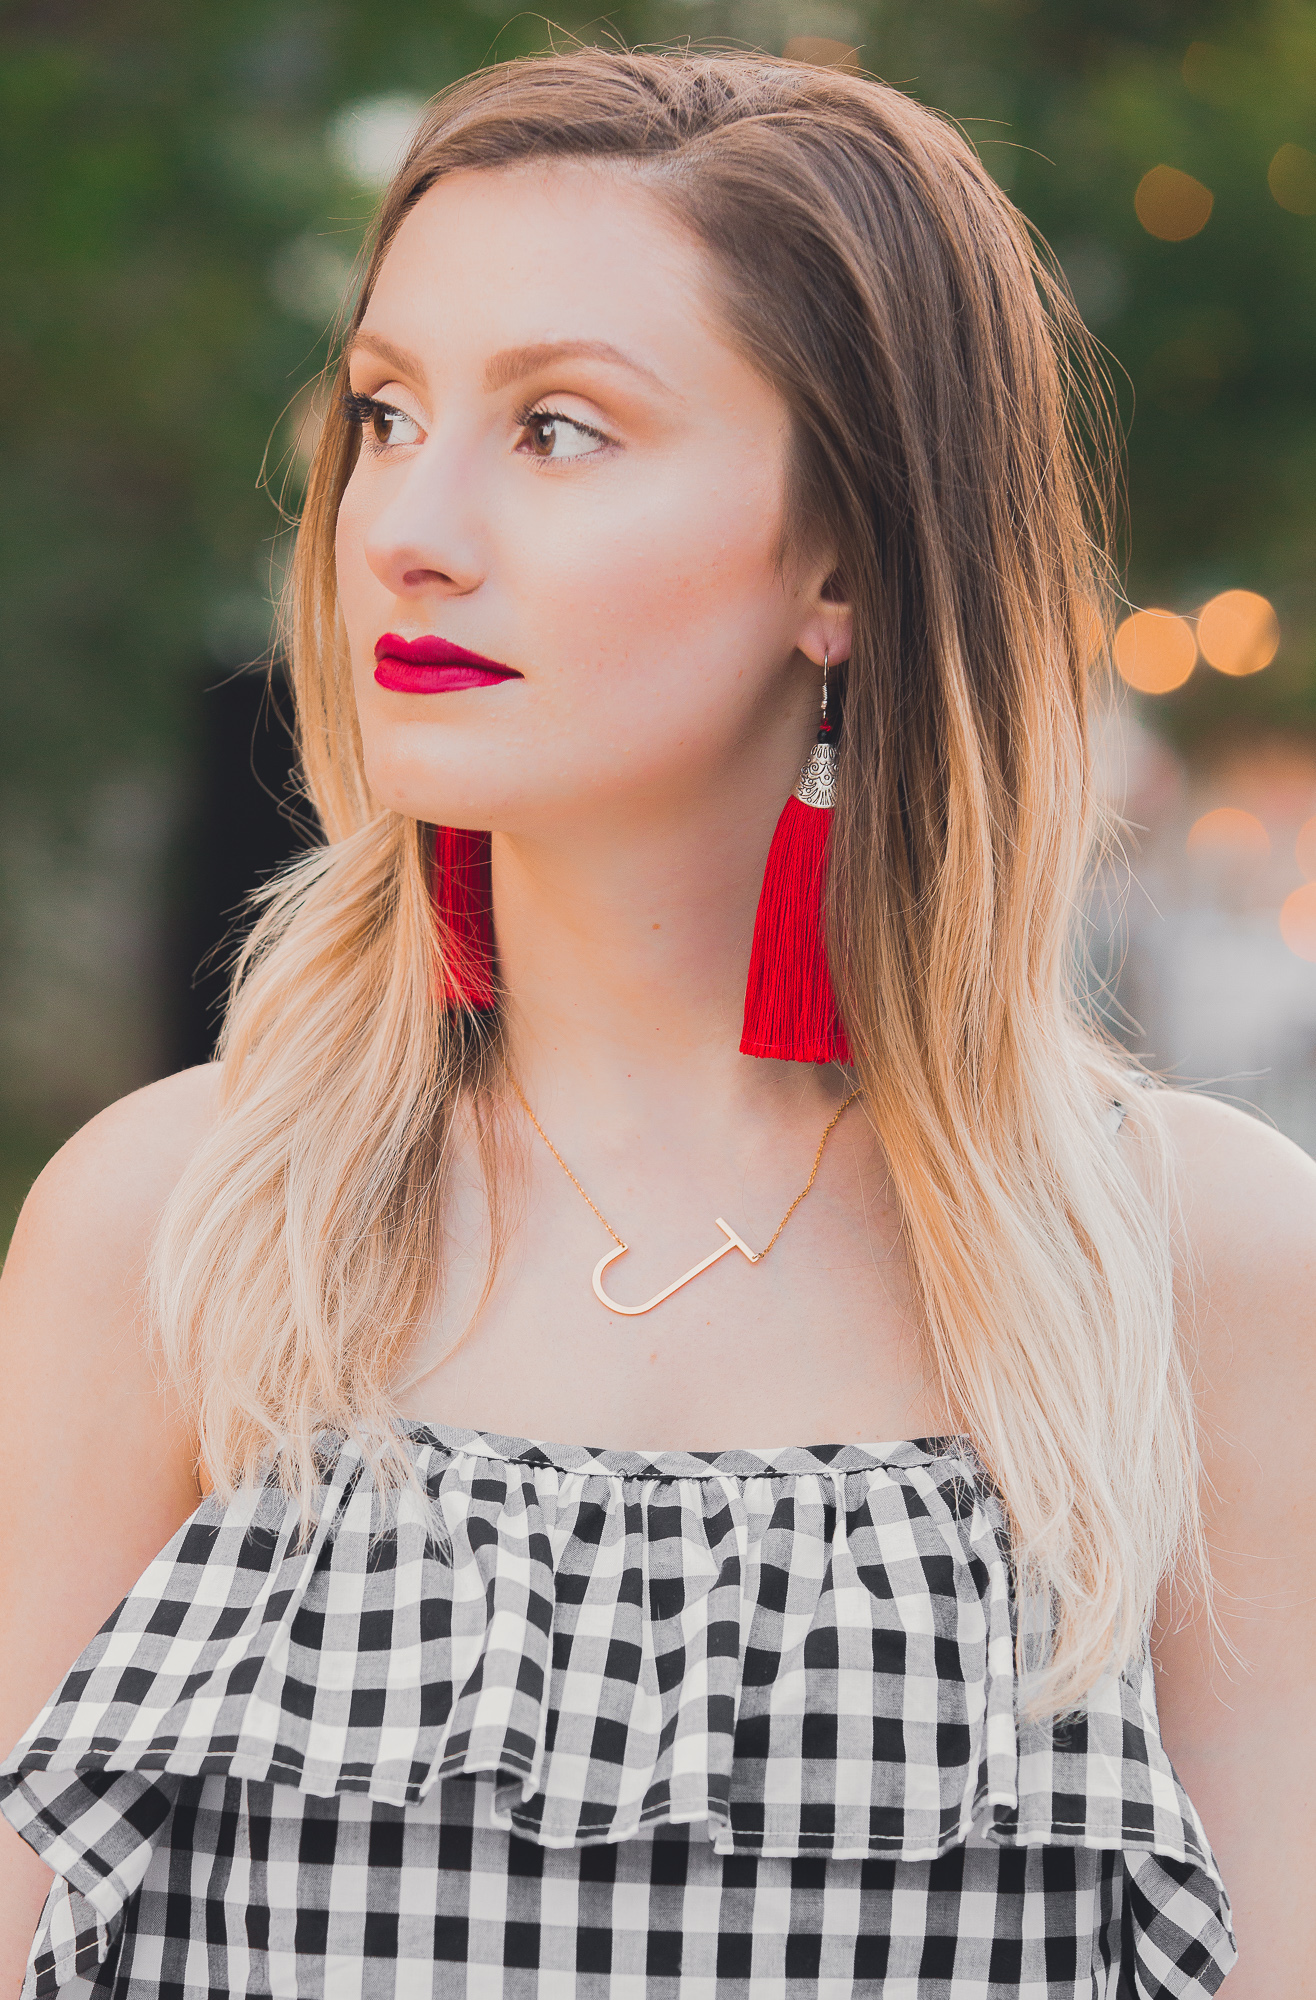 Gingham ruffle cami from Target, white denim, an da pop of red heels and earrings. Affordable summer fashion by popular North Carolina fashion blogger Jessica Linn from Linn style.